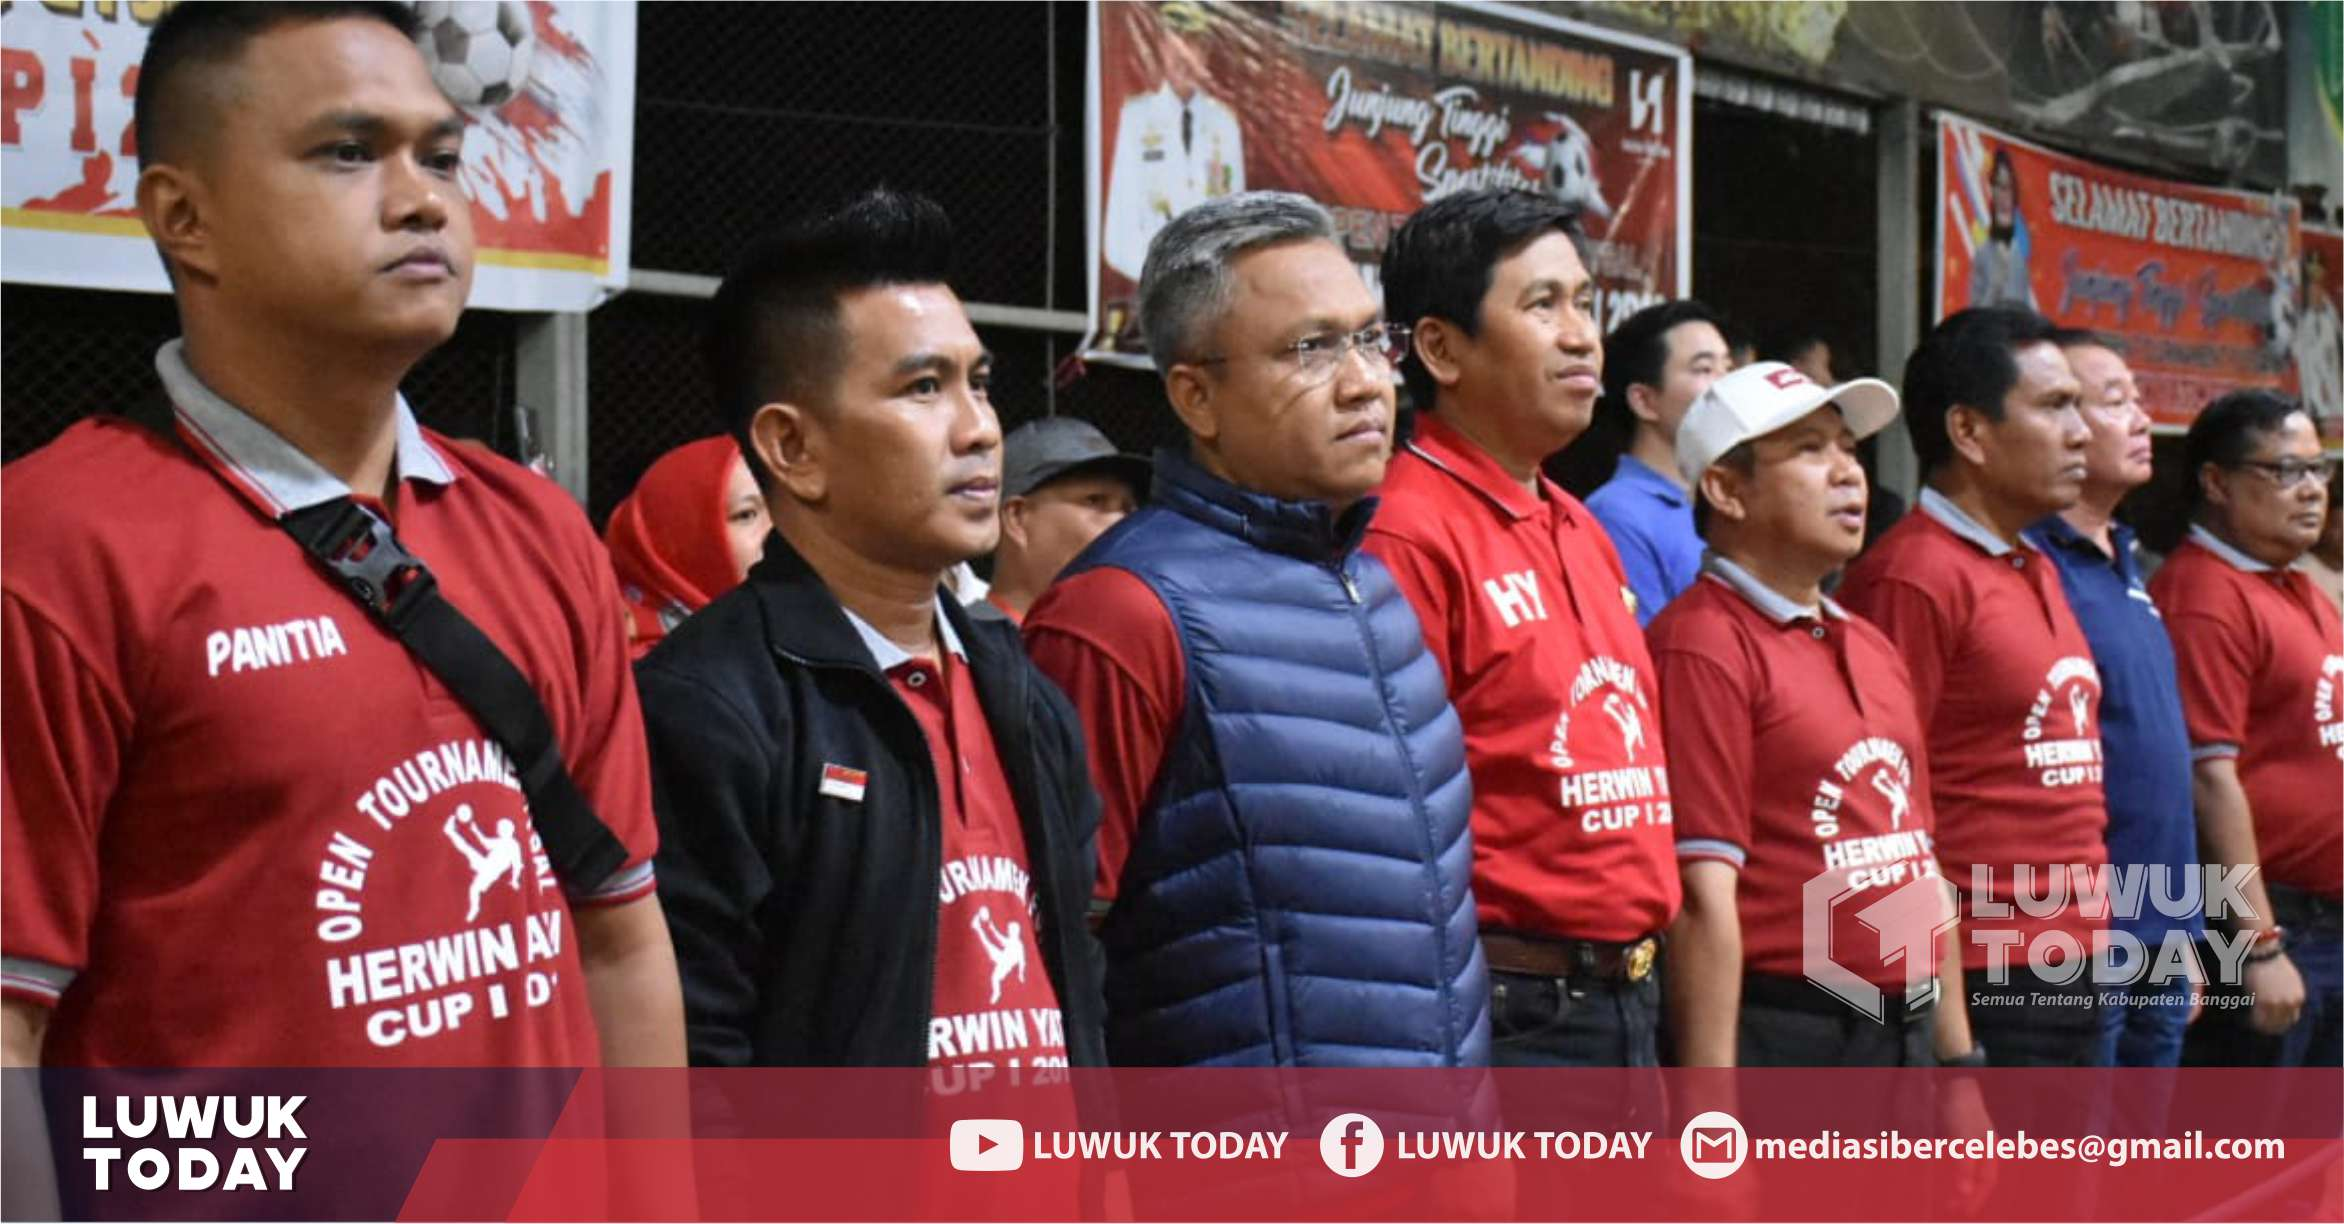 Photo of 48 Tim Bersaing Di Open Tournament Futsal Herwin Yatim Cup I 2019